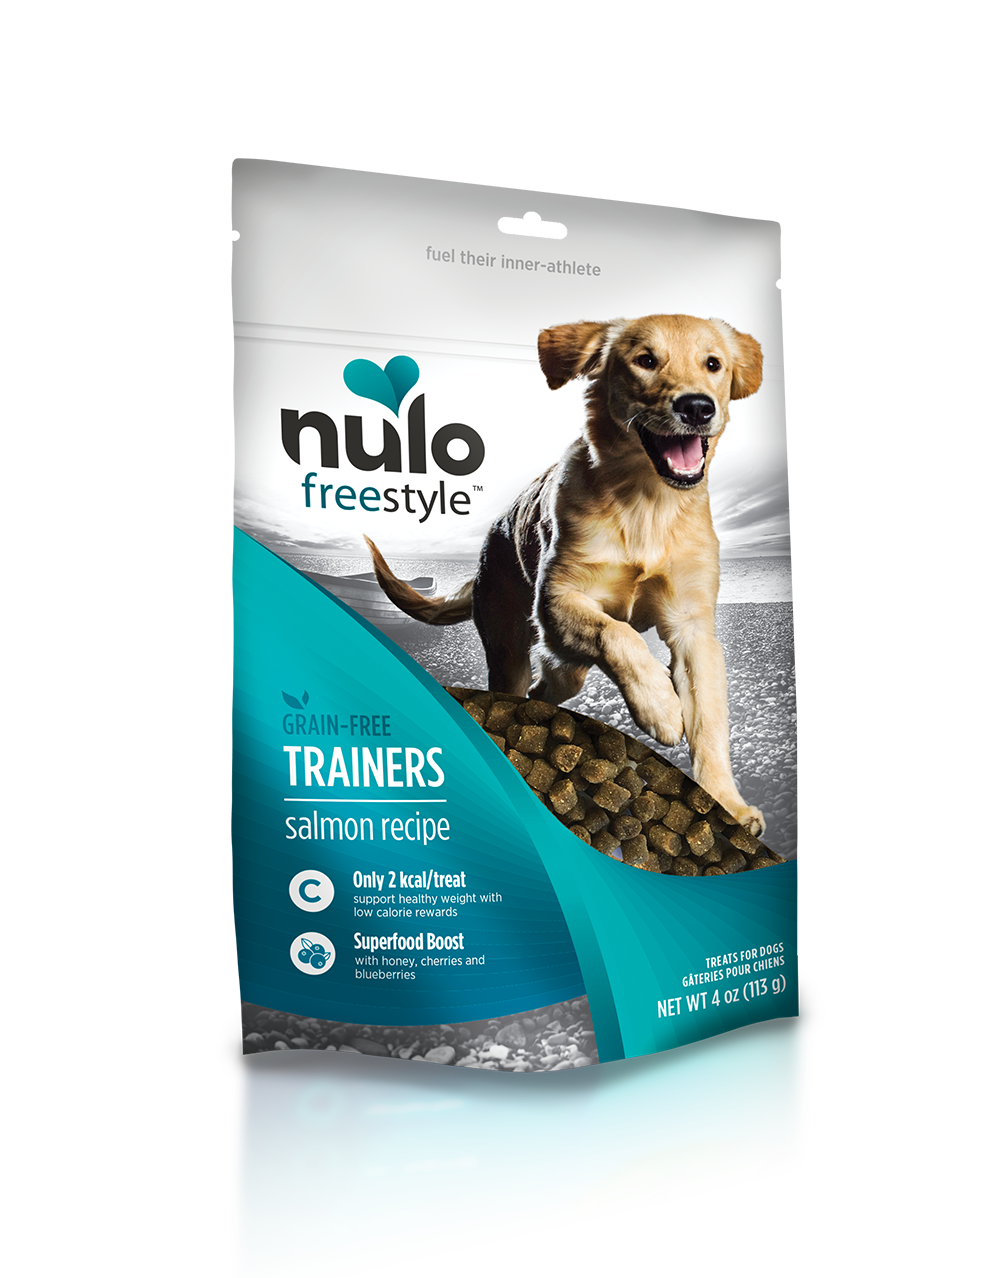 Nulo freestyle trainingtreats salmon